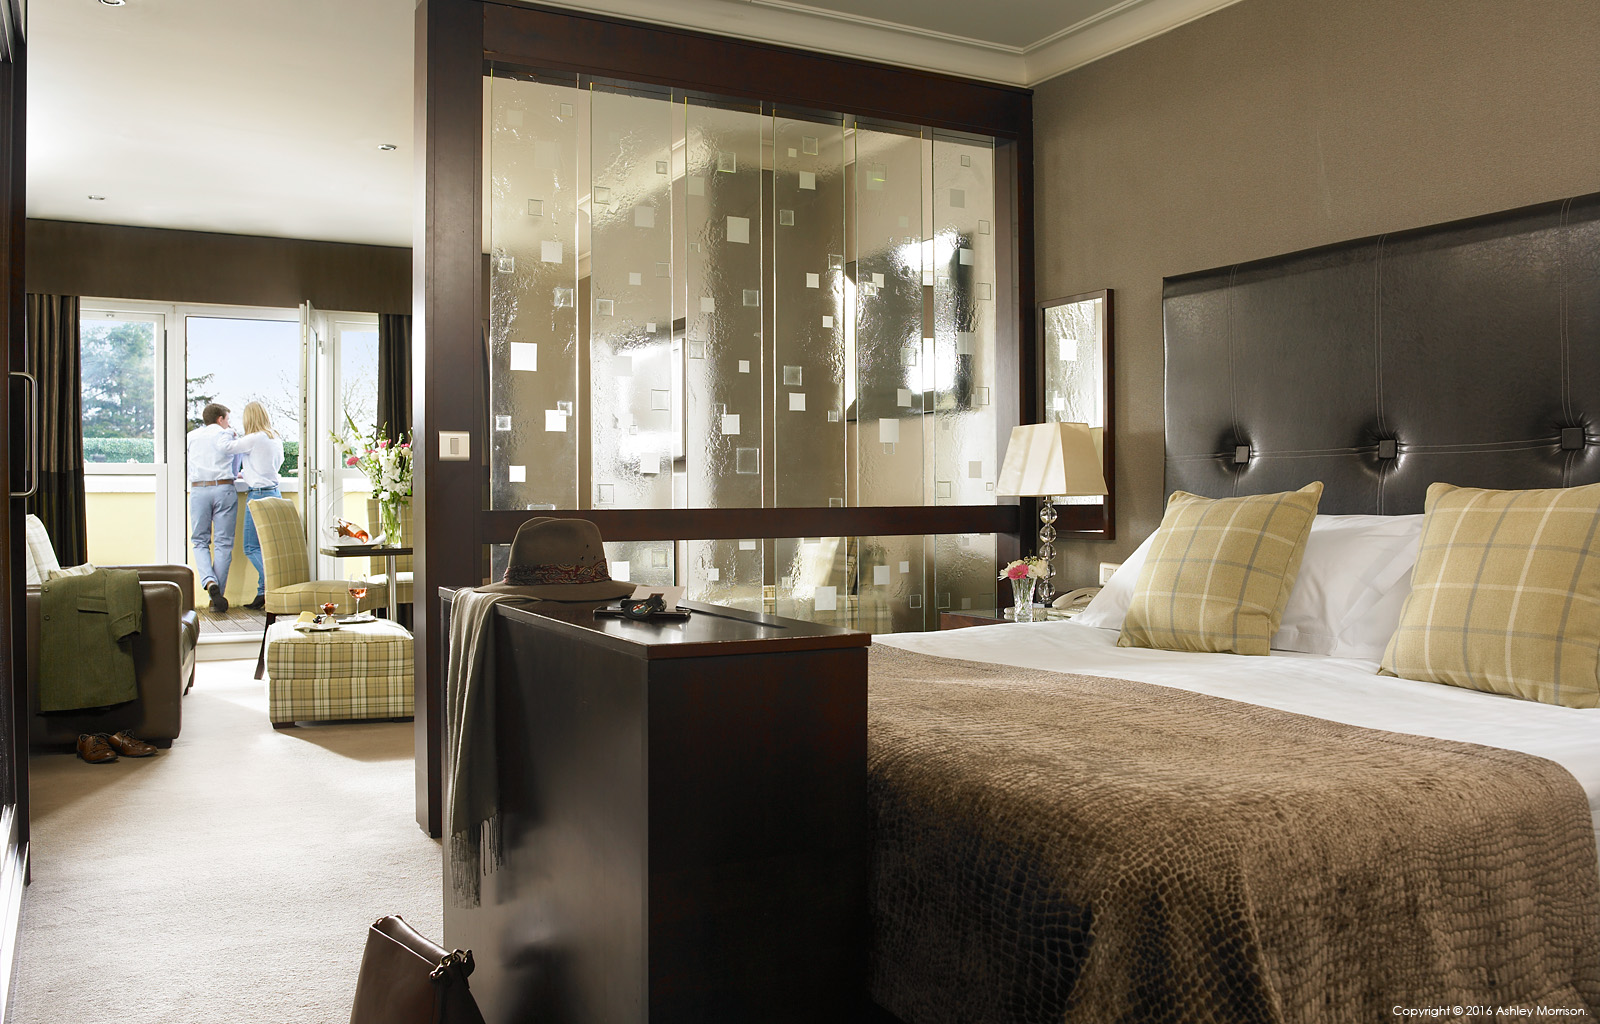 Junior Suite Contemporary bedroom at Killarney Park Hotel in the Irish County of Kerry.